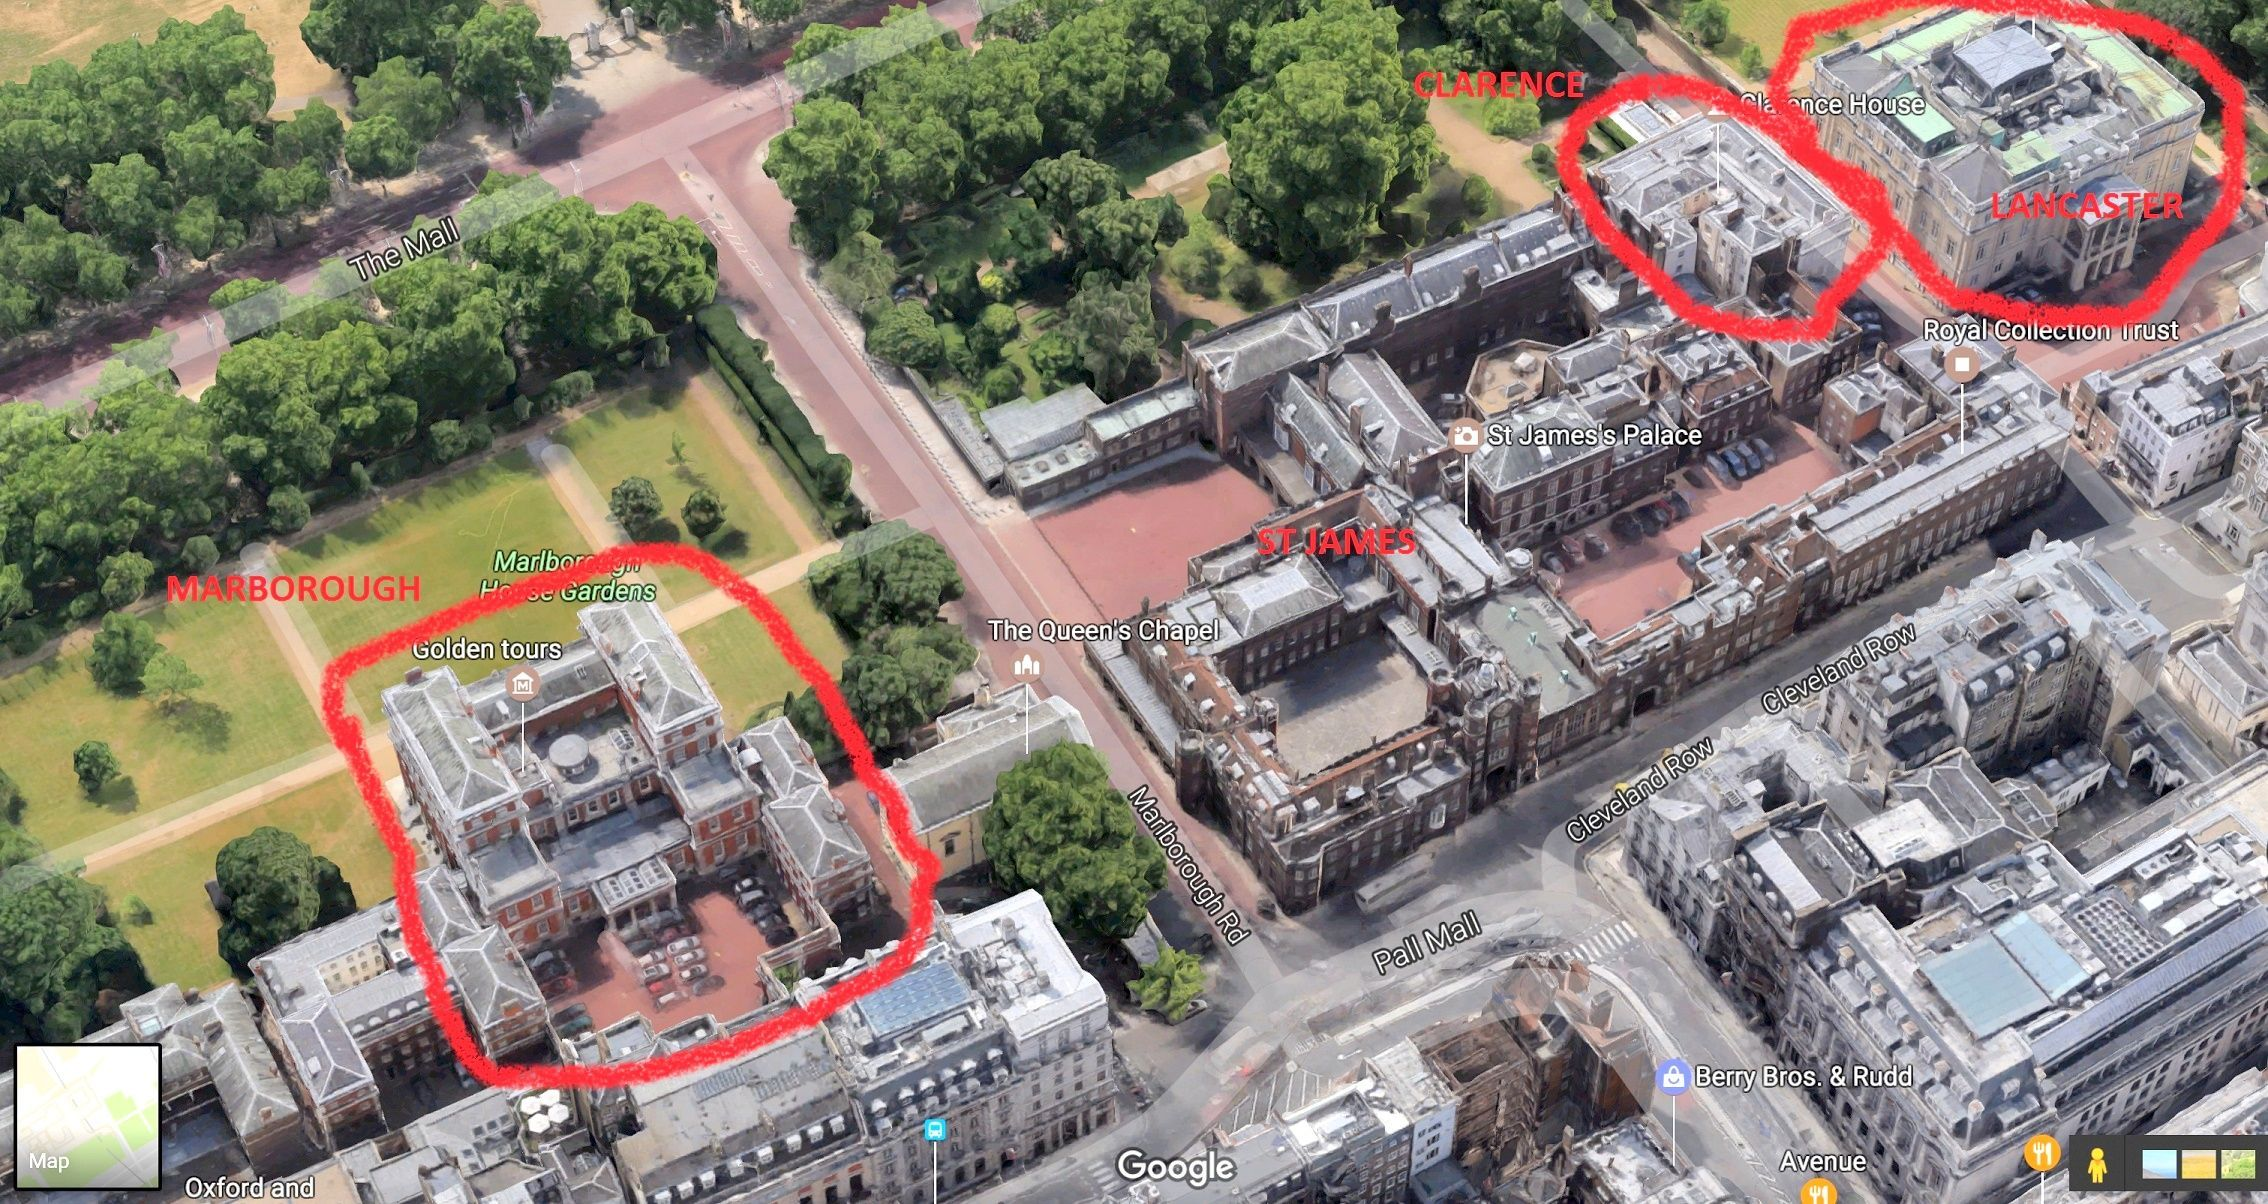 Balmoral Floor Plan Showing How Close Palaces Are Top Each Other British